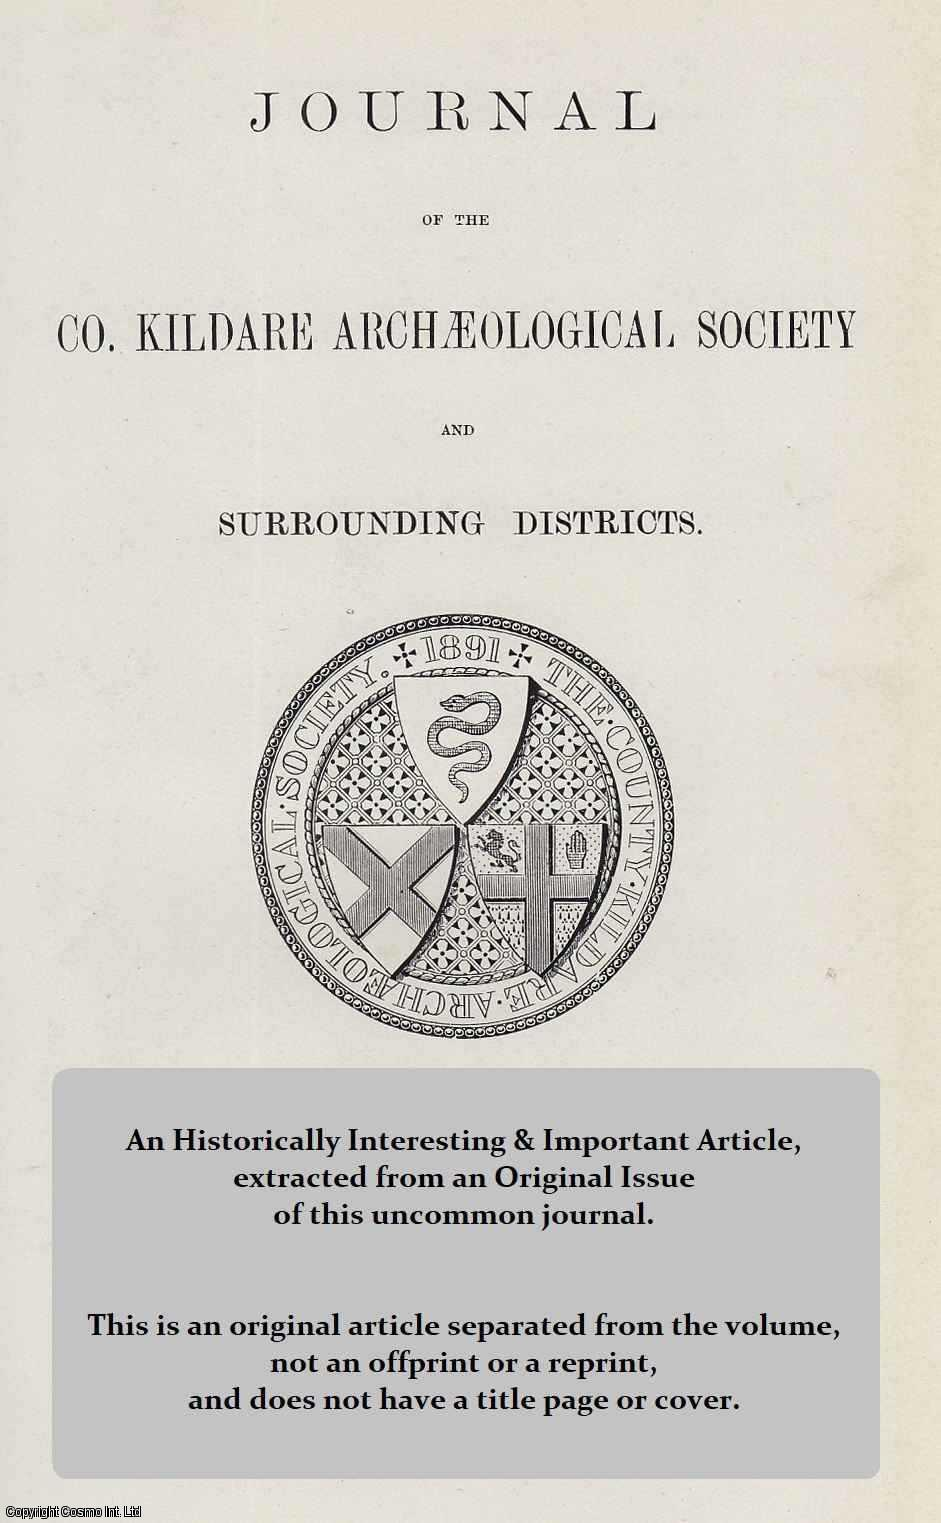 FITZGERALD, WALTER - The Principal Gentry of The County Kildare in The Year 1600. A rare original article from The Journal of the Kildare Archaeological Society, 1899-1902.